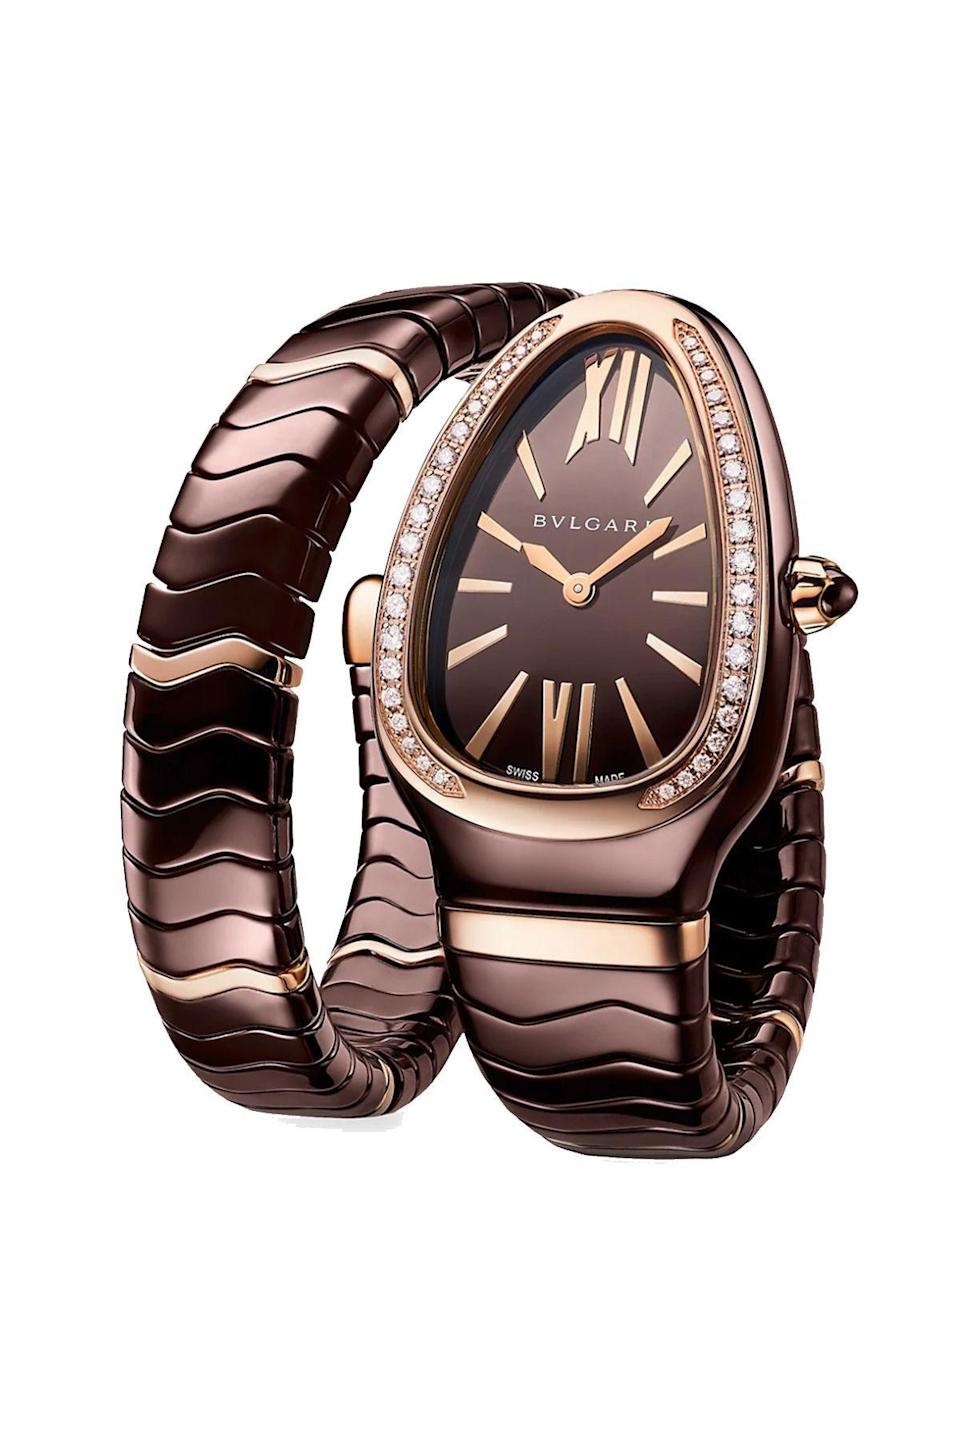 """<p><strong>Bvlgari</strong></p><p>saksfifthavenue.com</p><p><strong>$13000.00</strong></p><p><a href=""""https://go.redirectingat.com?id=74968X1596630&url=https%3A%2F%2Fwww.saksfifthavenue.com%2Fproduct%2Fbvlgari-serpenti-tubogas-18k-rose-gold--brown-ceramic--amp--diamond-single-twist-watch-0400011019692.html%3Fdwvar_0400011019692_color%3DROSE%2BGOLD&sref=https%3A%2F%2Fwww.townandcountrymag.com%2Fstyle%2Fjewelry-and-watches%2Fg36186288%2Fbest-rose-gold-watches-women%2F"""" rel=""""nofollow noopener"""" target=""""_blank"""" data-ylk=""""slk:Shop Now"""" class=""""link rapid-noclick-resp"""">Shop Now</a></p><p>Who among us has not oogled at the iconic Serpenti watch? But this with both rose gold, brown ceramic, and diamonds is a bona fide scene stealer. </p>"""